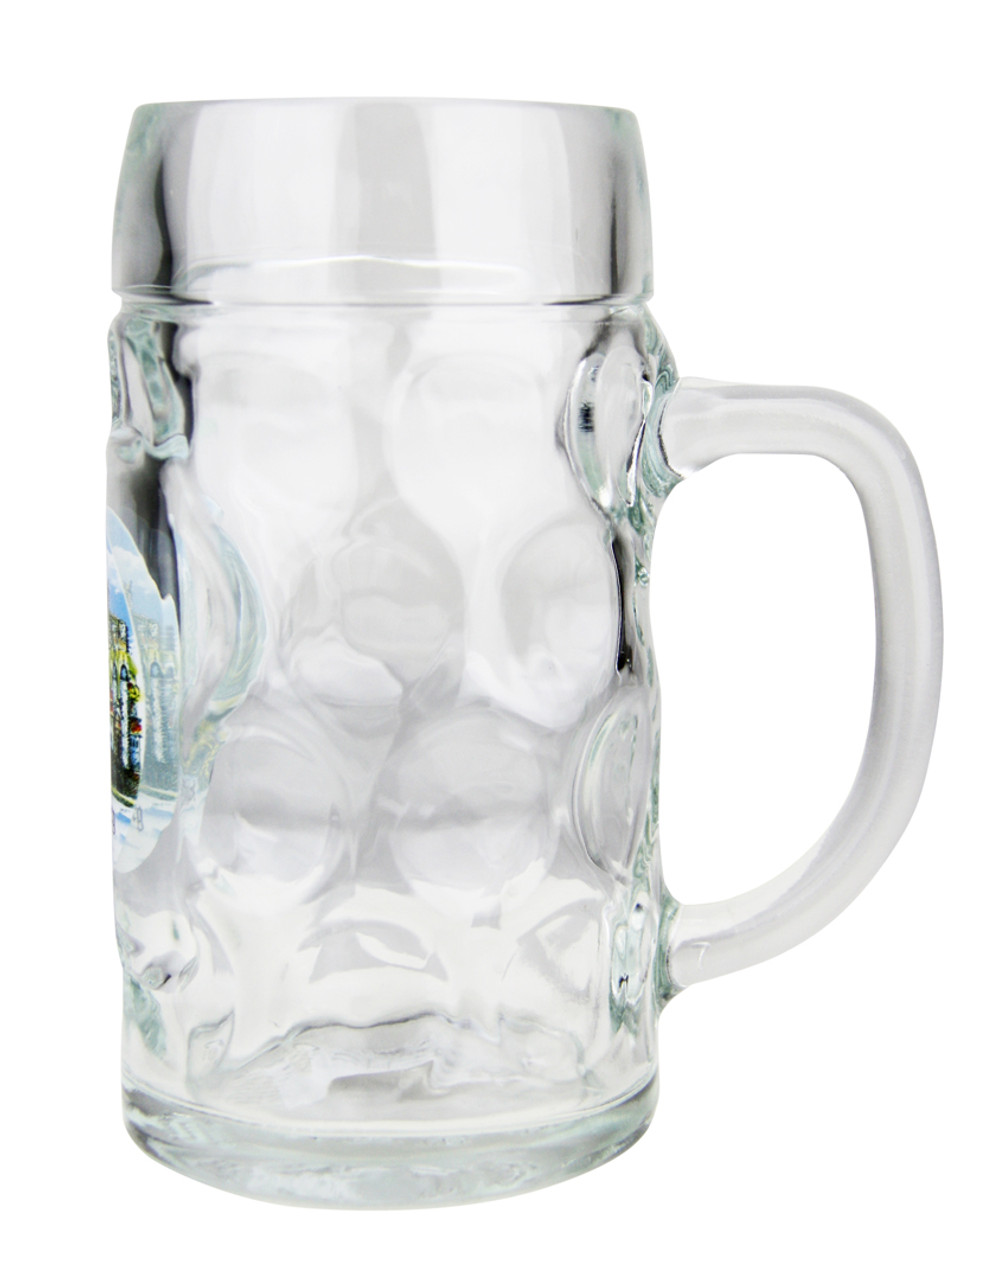 Side View of Authentic Heidelberg Oktoberfest Beer Mug